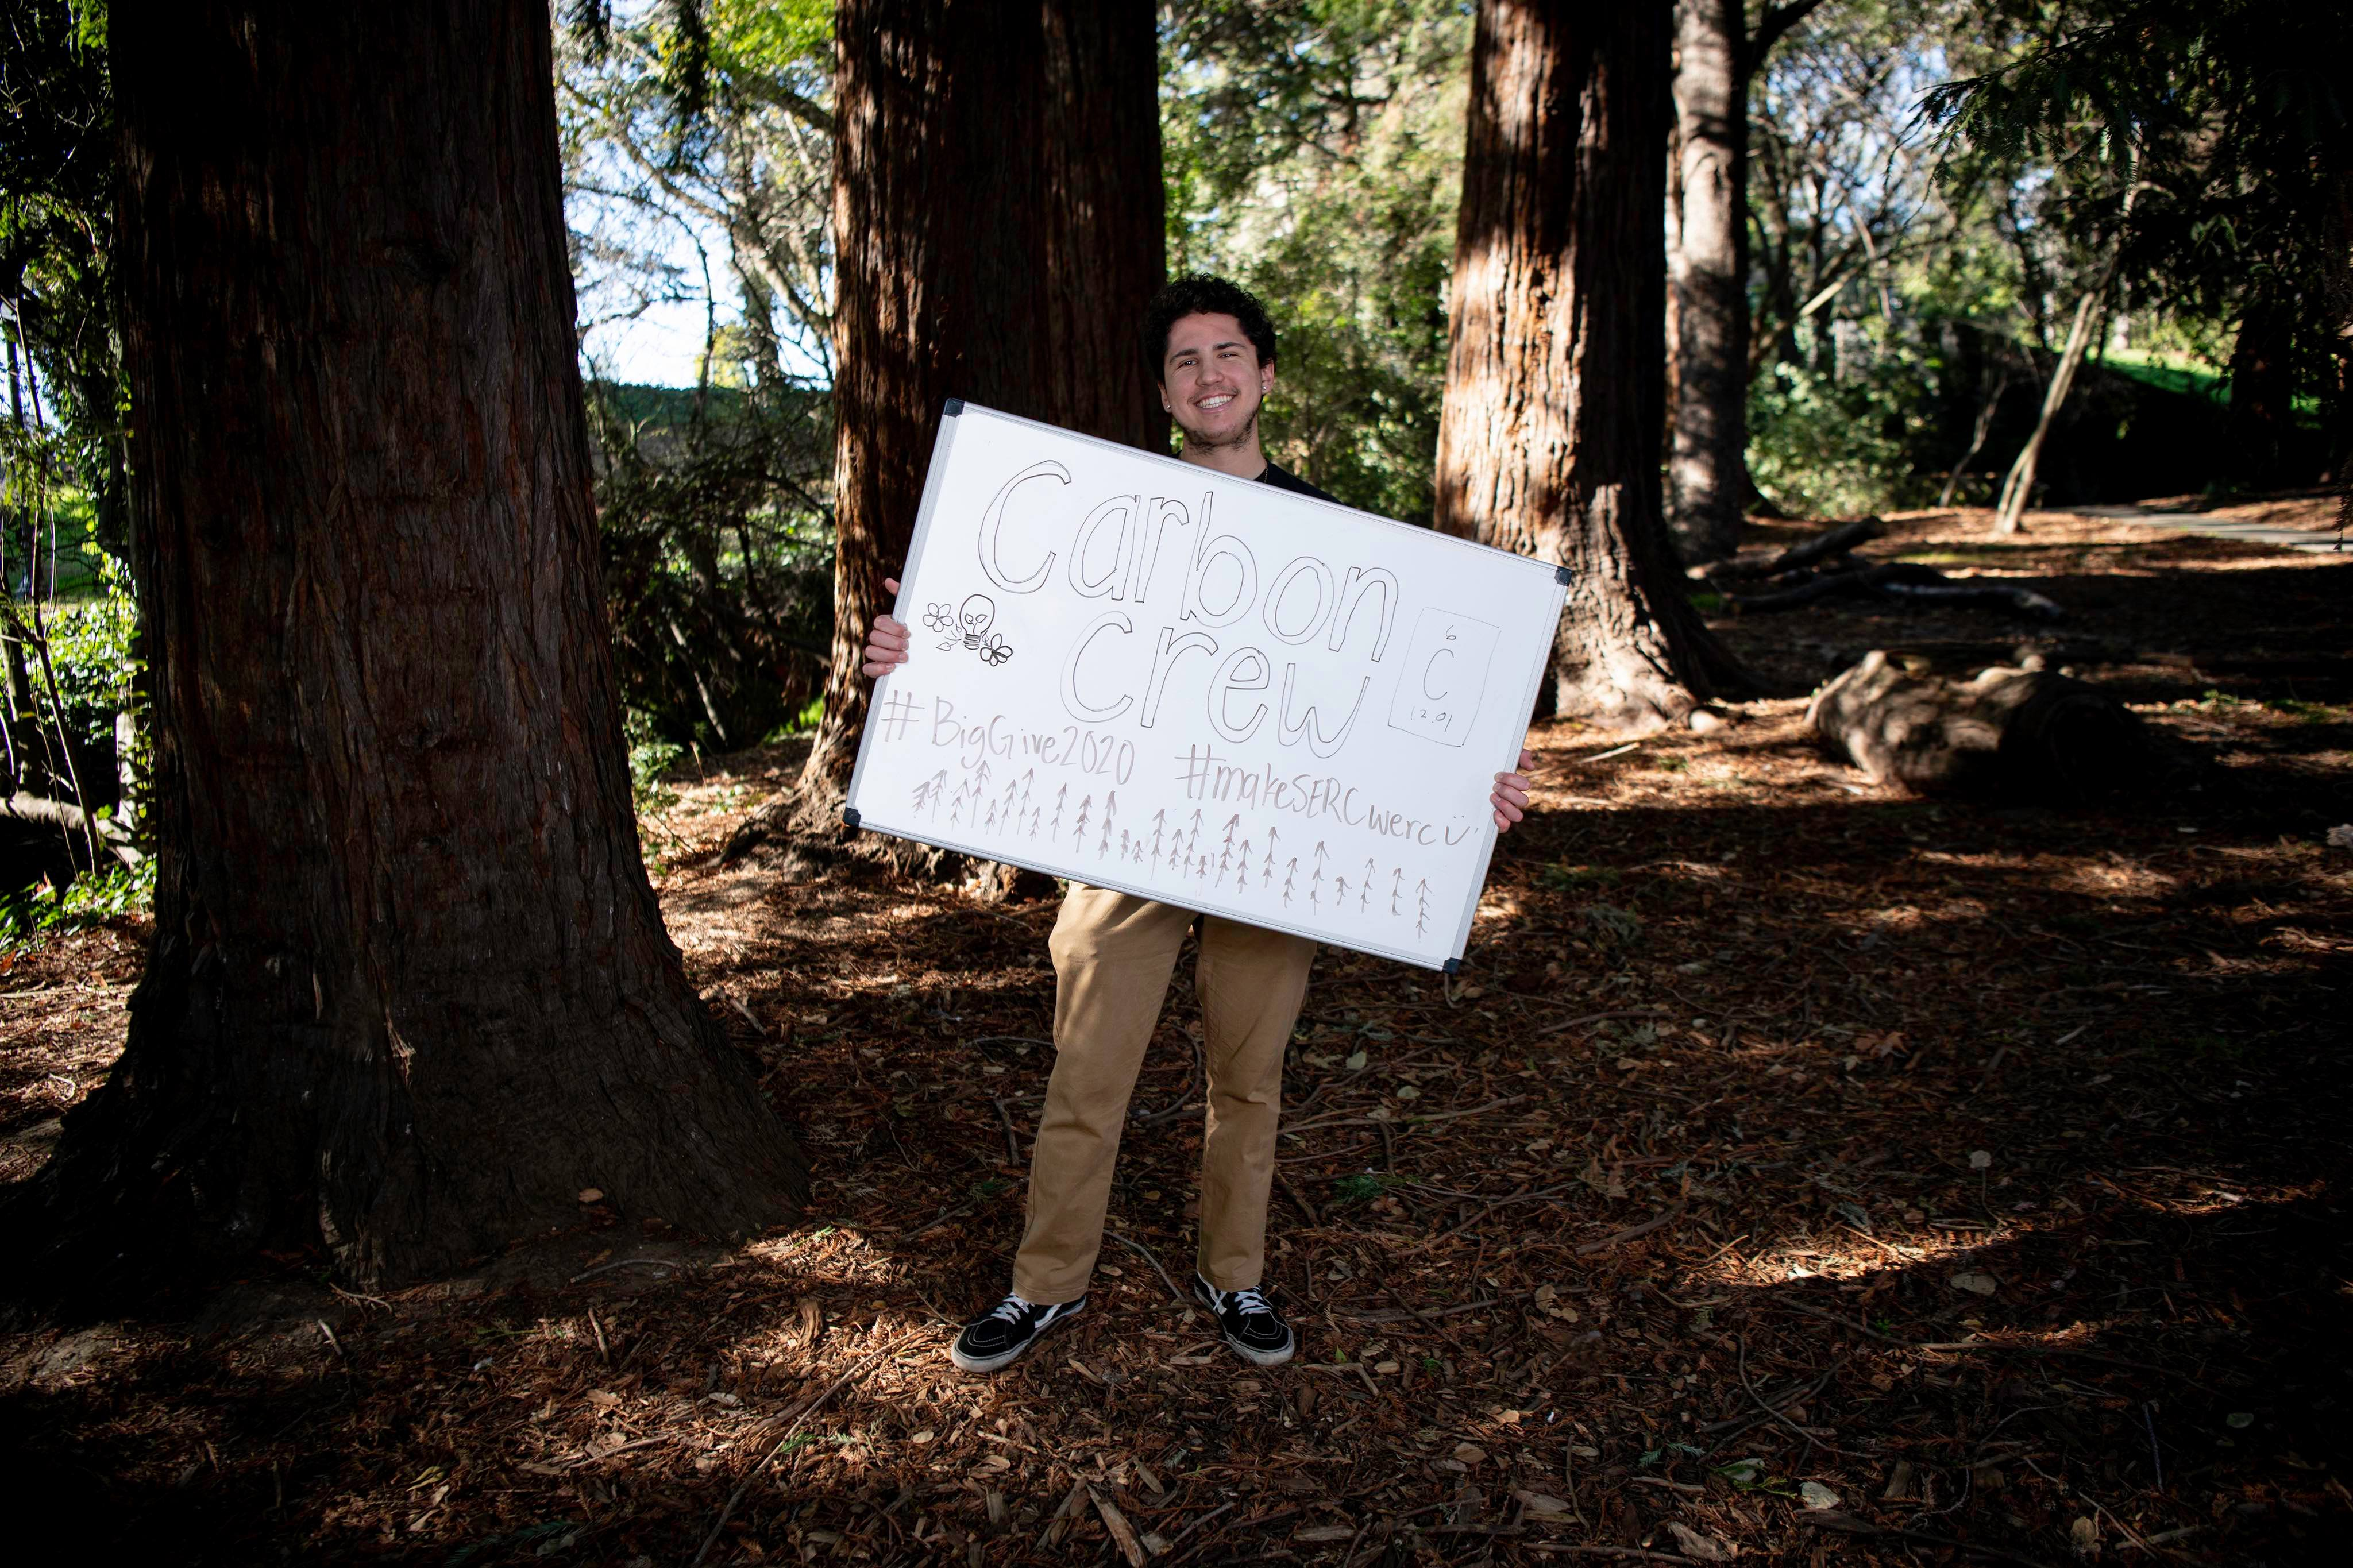 Dante holding a sign about SERC in front of a tree.